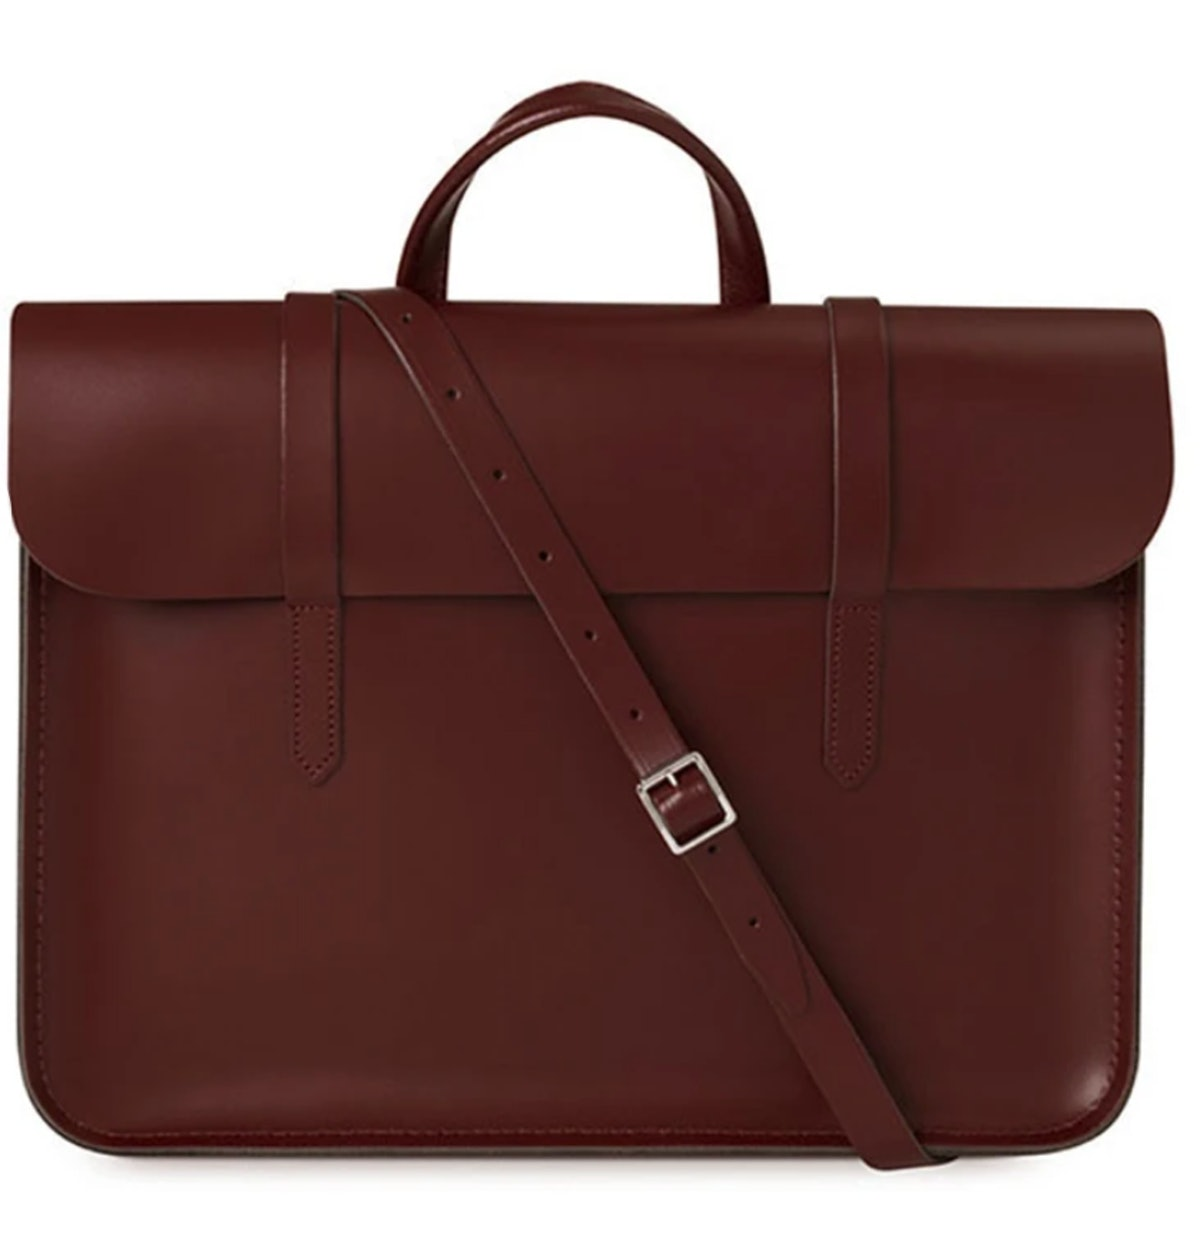 The Cambridge Satchel Company's Leather Music Case that can hold a laptop.